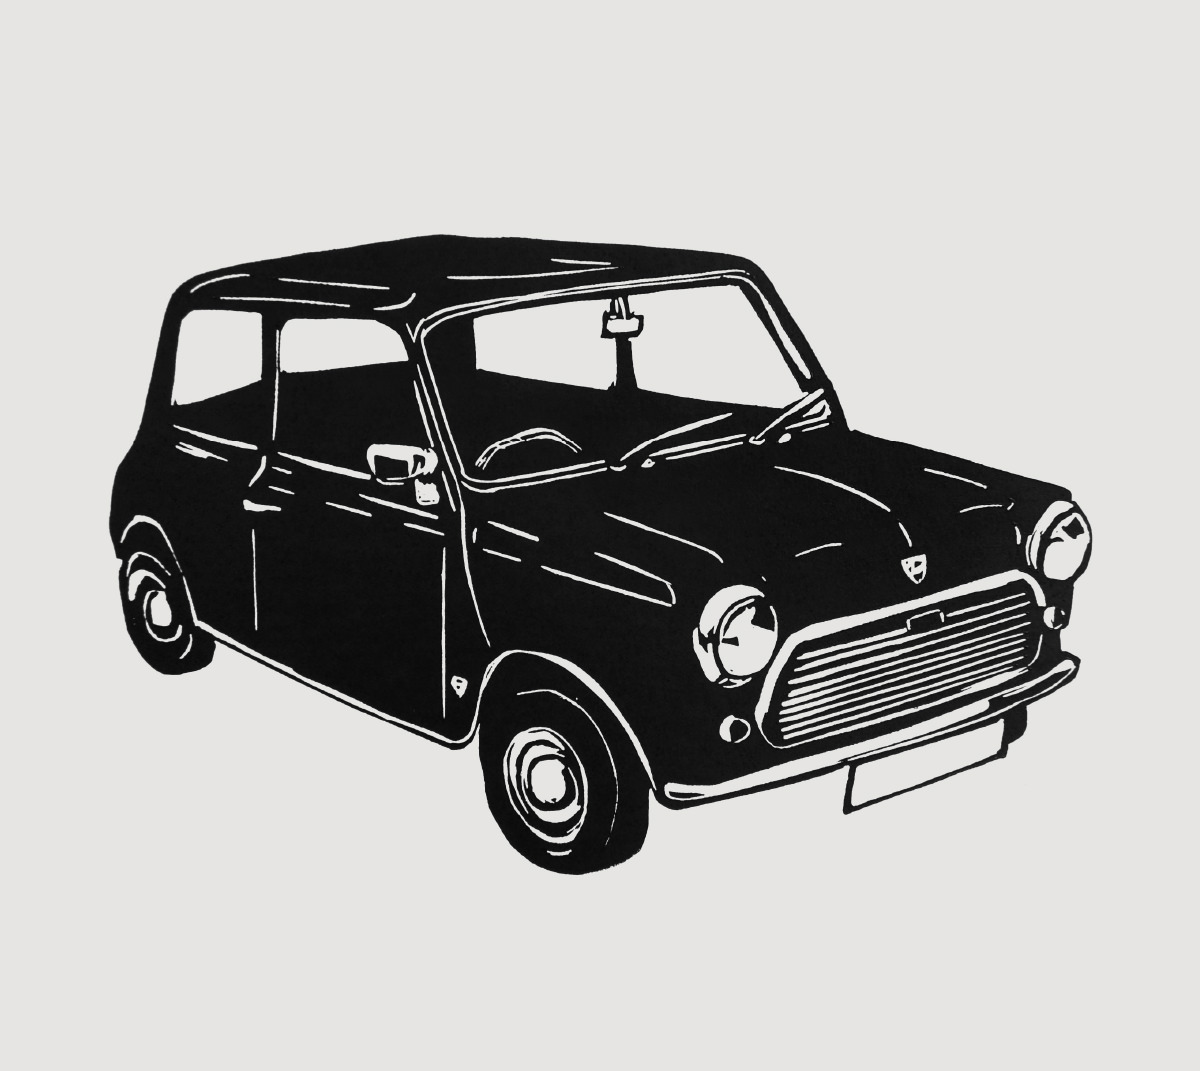 Retro Mini car - linocut print